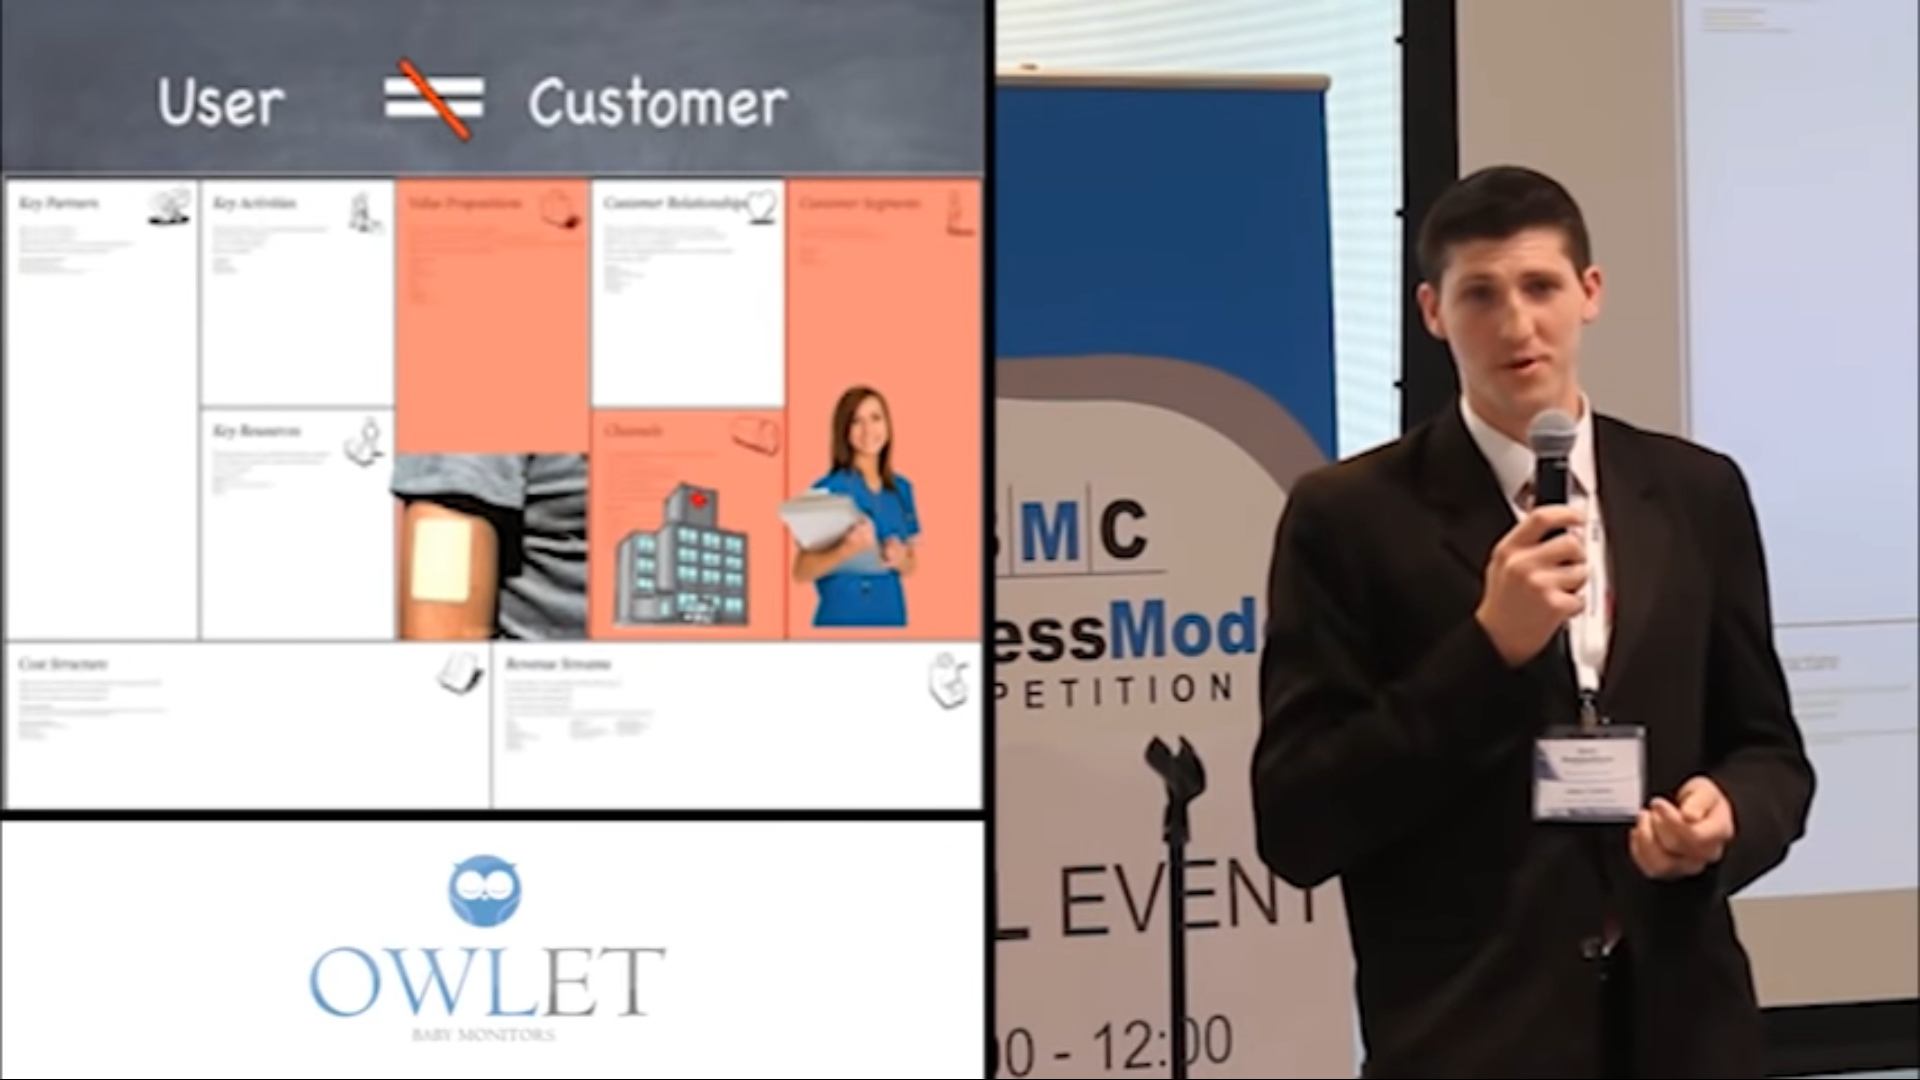 Co-founder Jake Colvin using the business model canvas with images and color coding to share complex learnings in a simple way. Here the learning is that your user is not your customer.